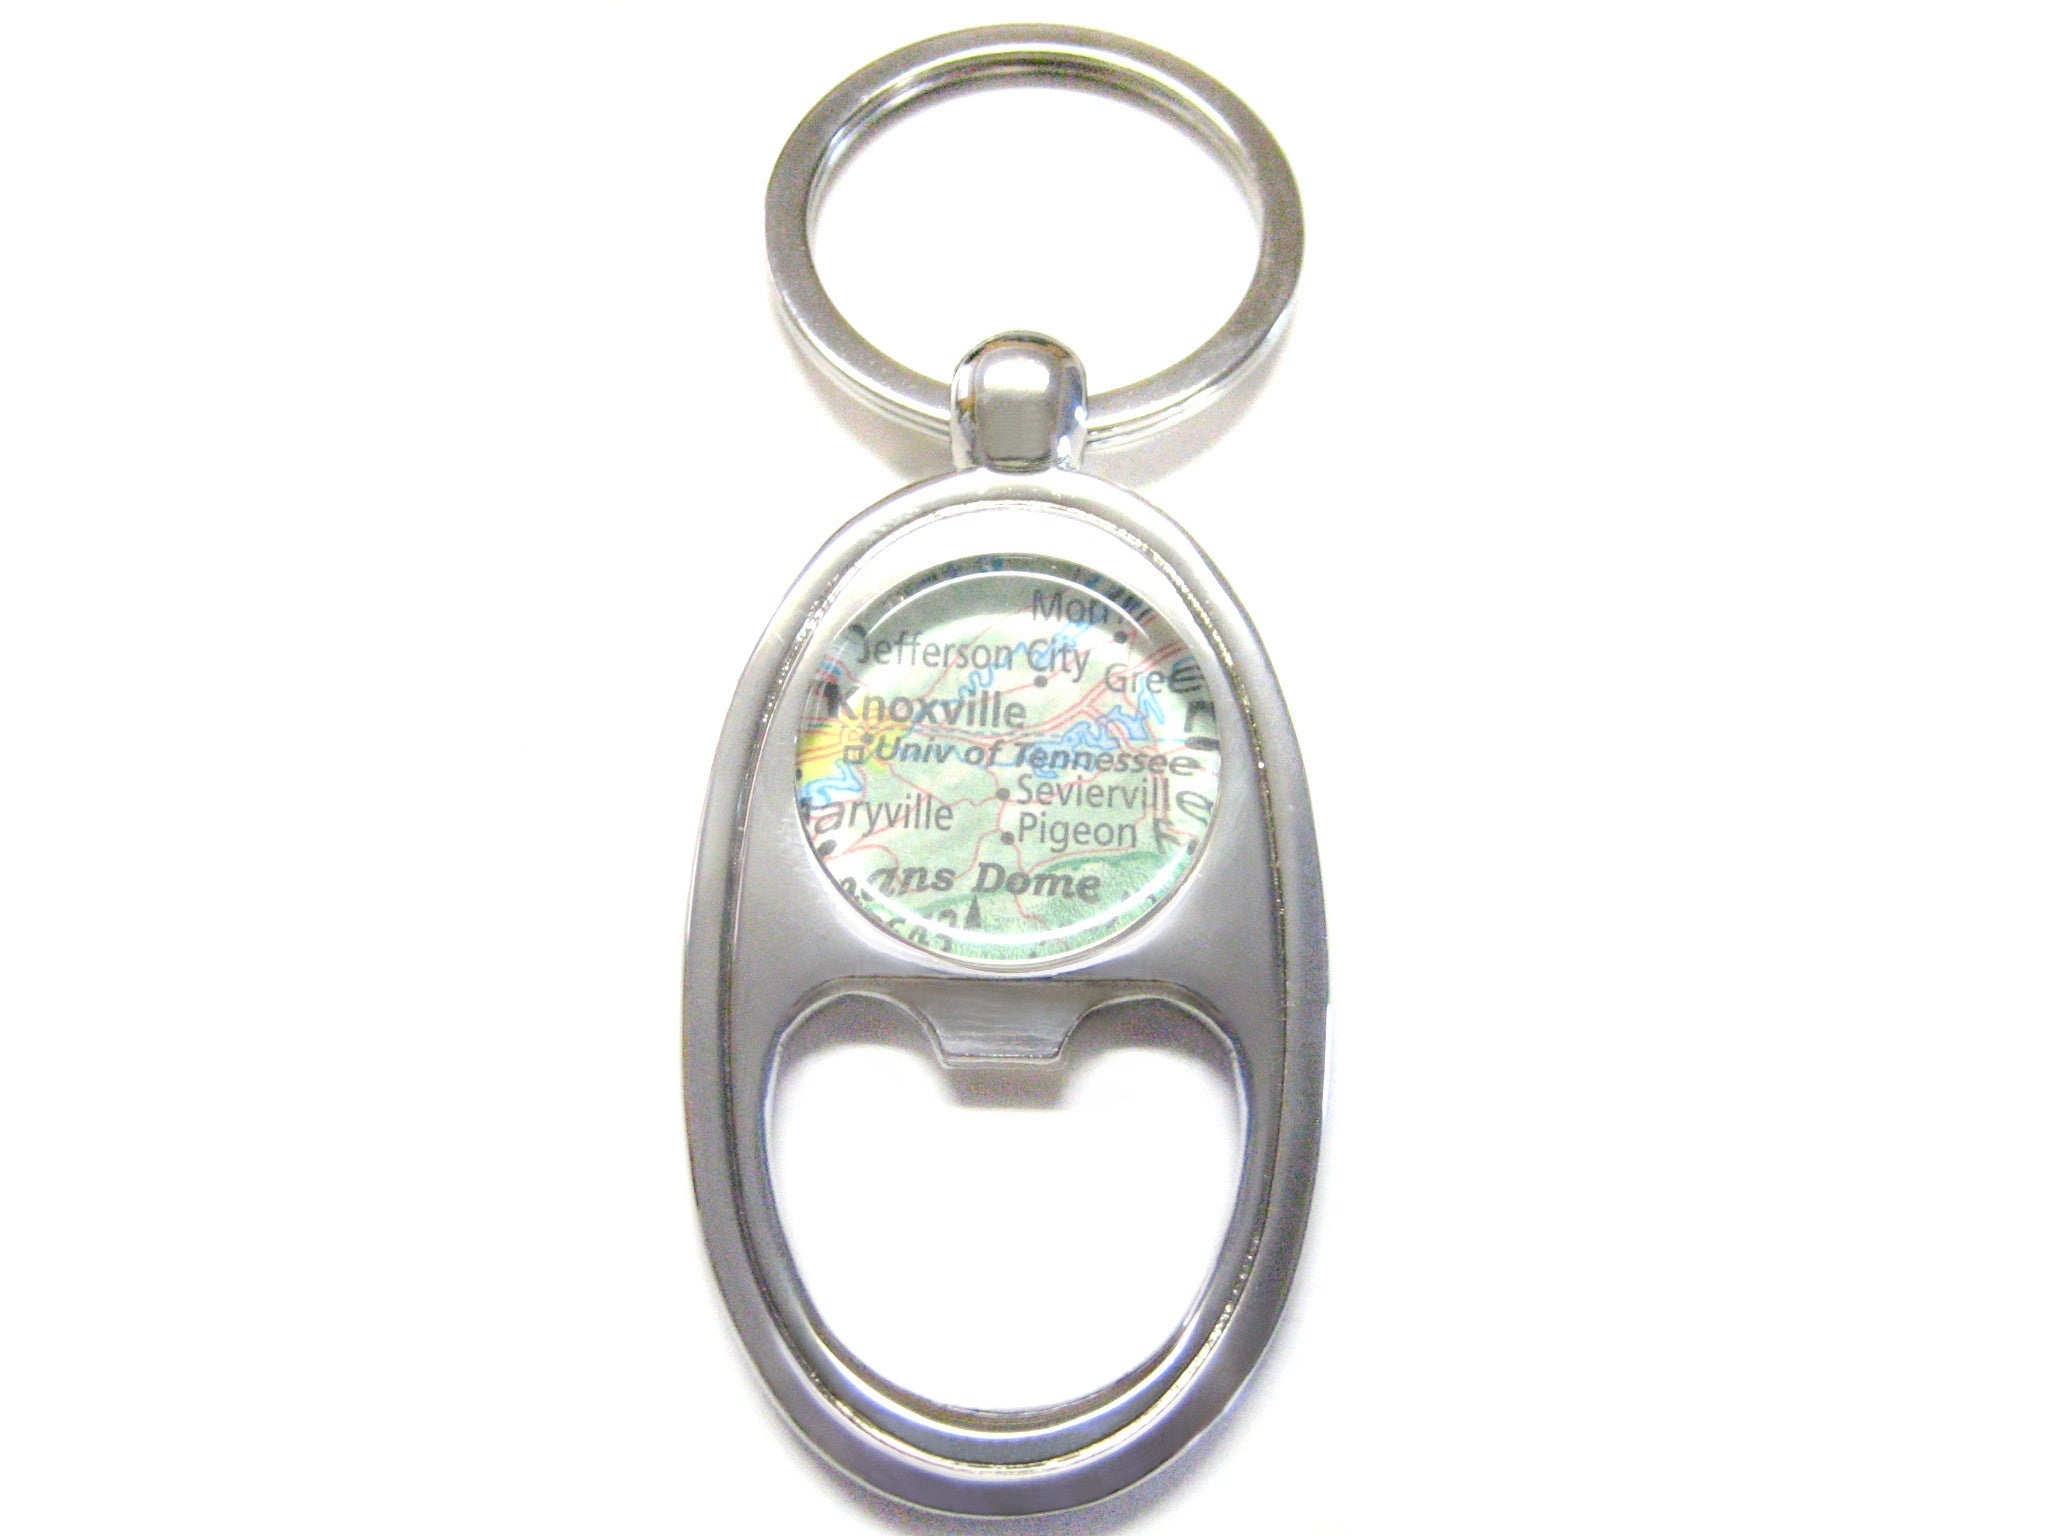 University of Tennessee Map Bottle Opener Key Chain